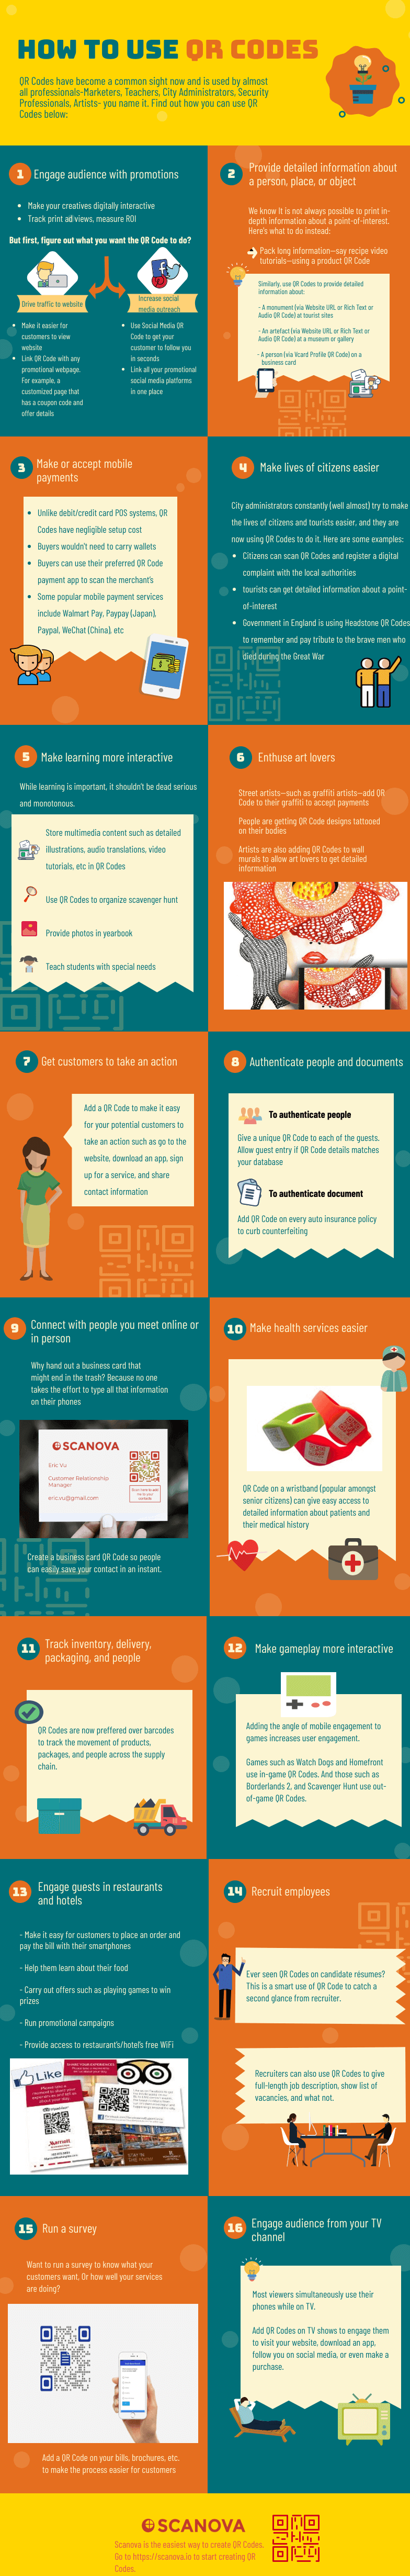 Infographic o how to use QR Codes